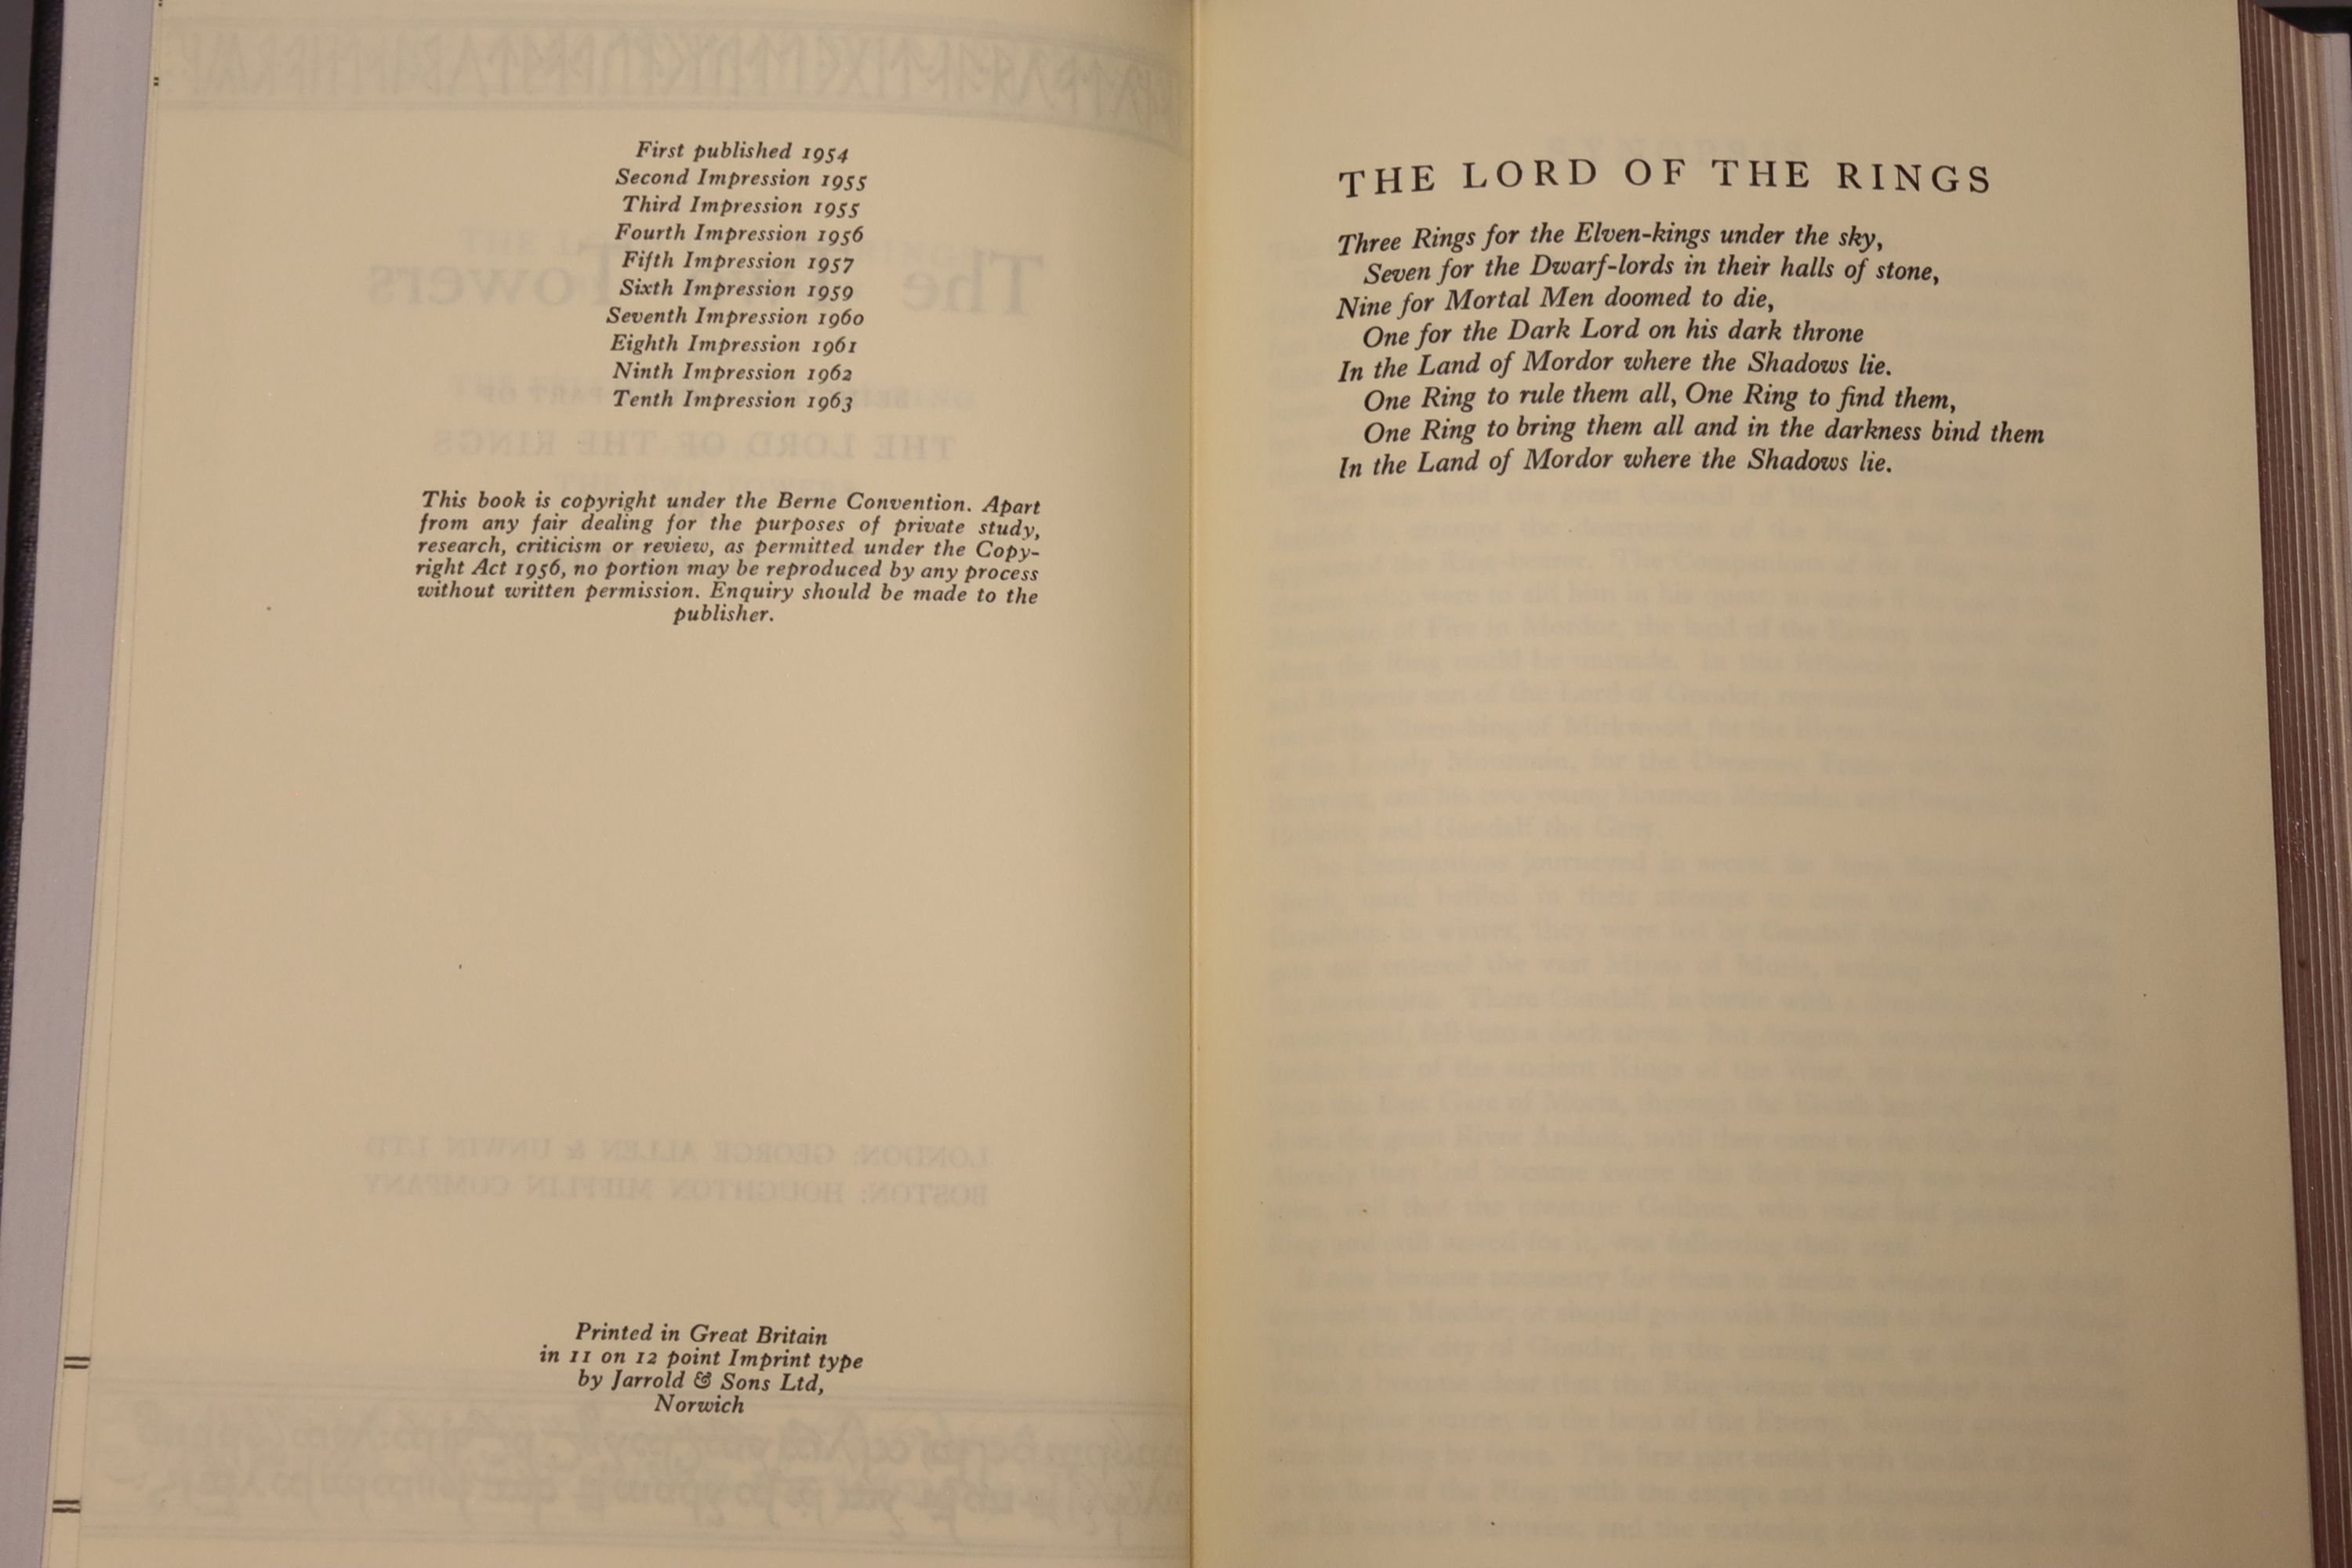 Tolkein, J.R.R. - The Fellowship of the Ring, The Two Towers, The Return of the King 1963, tenth and - Image 7 of 11